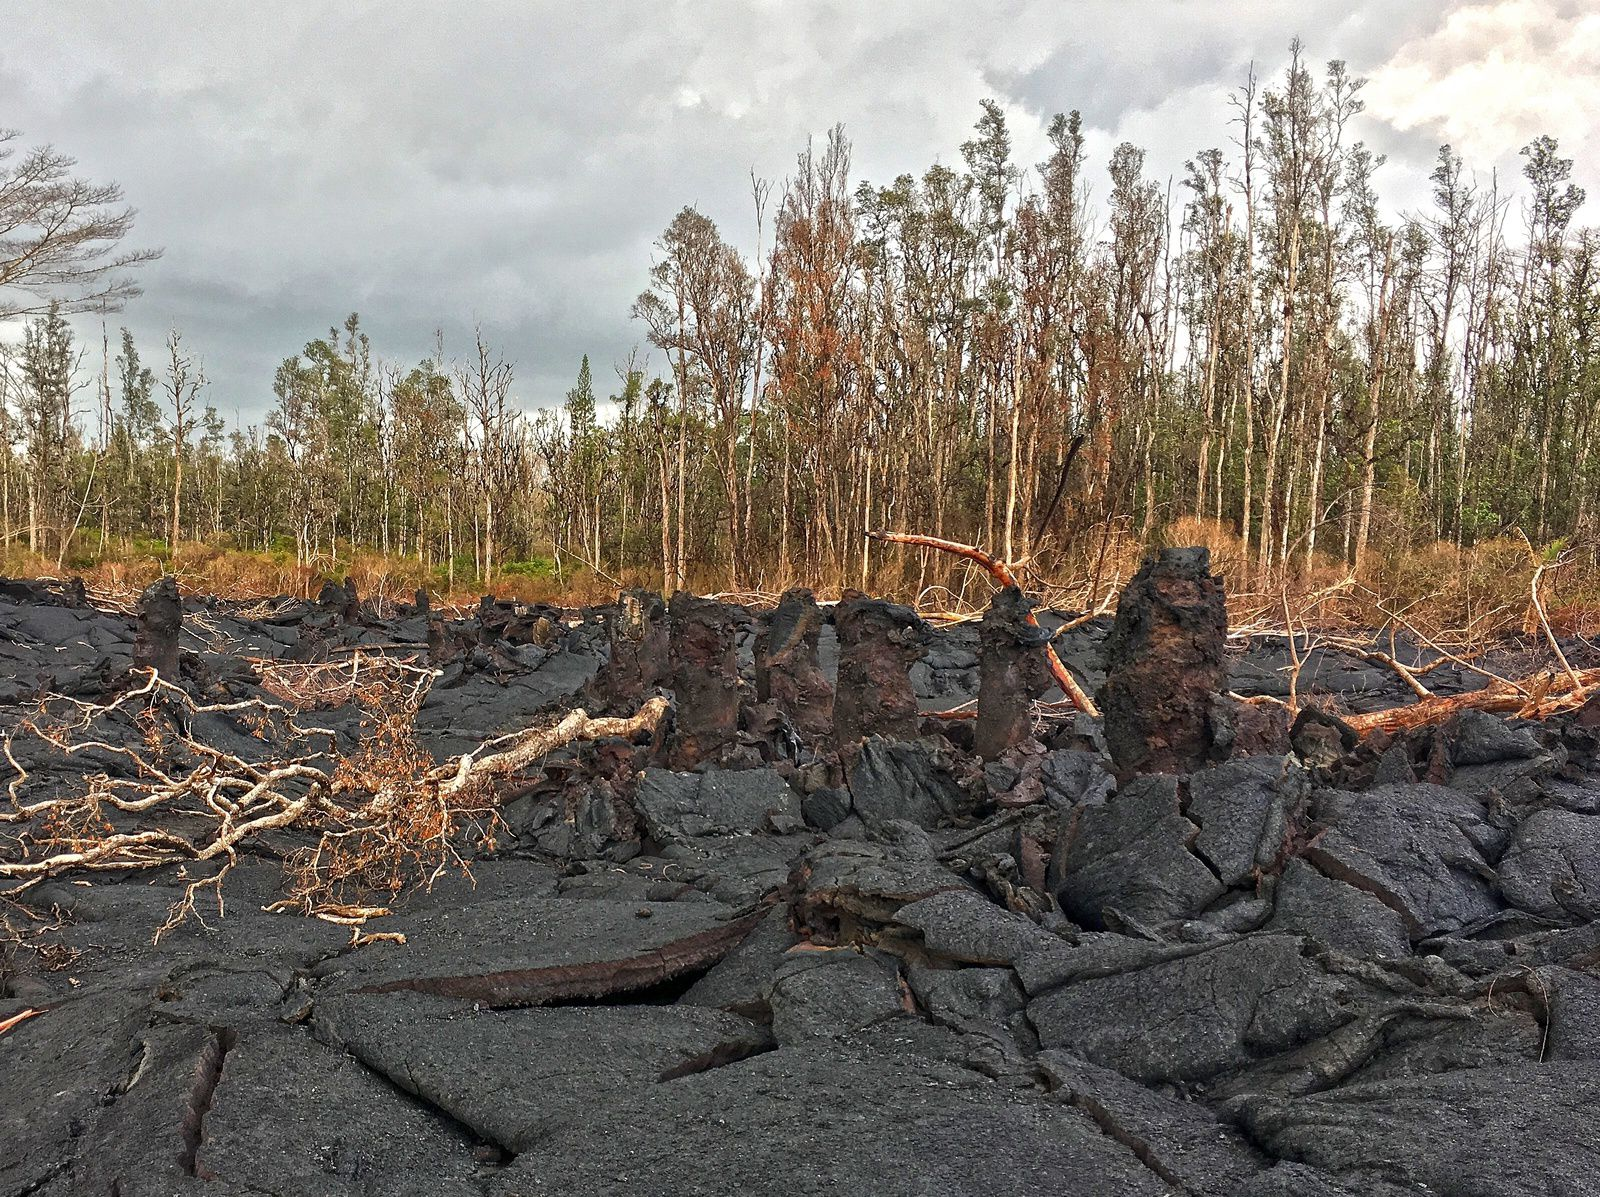 "Kilauea East Rift Zone - Lava trees, shown here in a fissure 8 flow, are formed when lava inundates a forested area and surrounds the tree trunks. Lava cools against the trunk, forming a column of rock and eventually burning the tree. As the lava flow deflates, the rock surrounding the trunk is left standing above the flow surface, forming a ""lava tree"" and showing the high-stand of lava that flowed through the area."